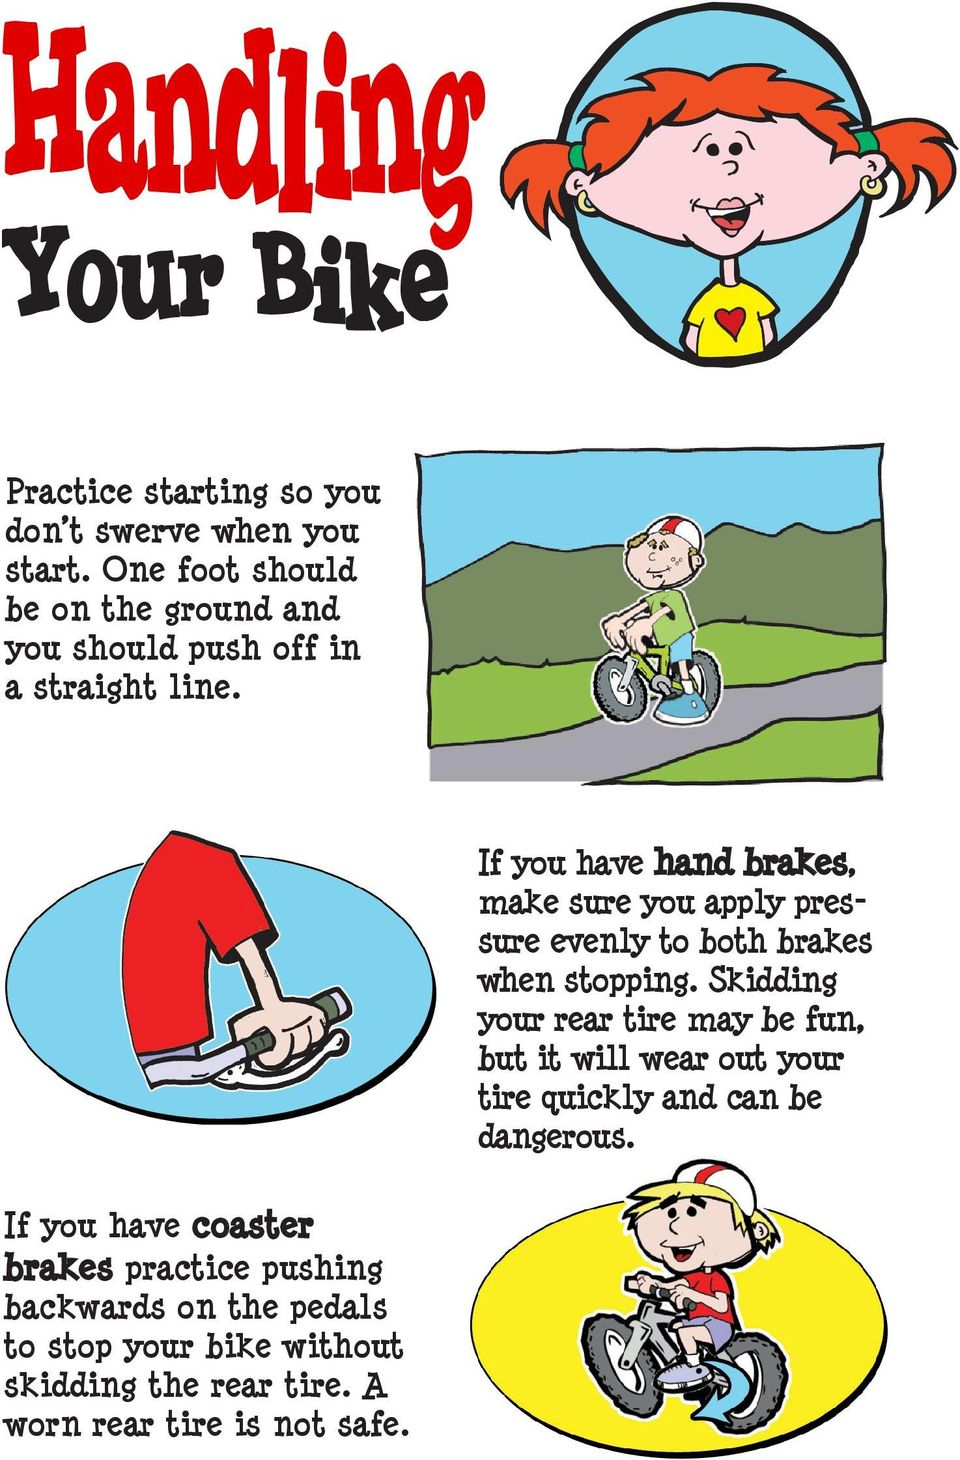 If you have coaster brakes practice pushing backwards on the pedals to stop your bike without skidding the rear tire.